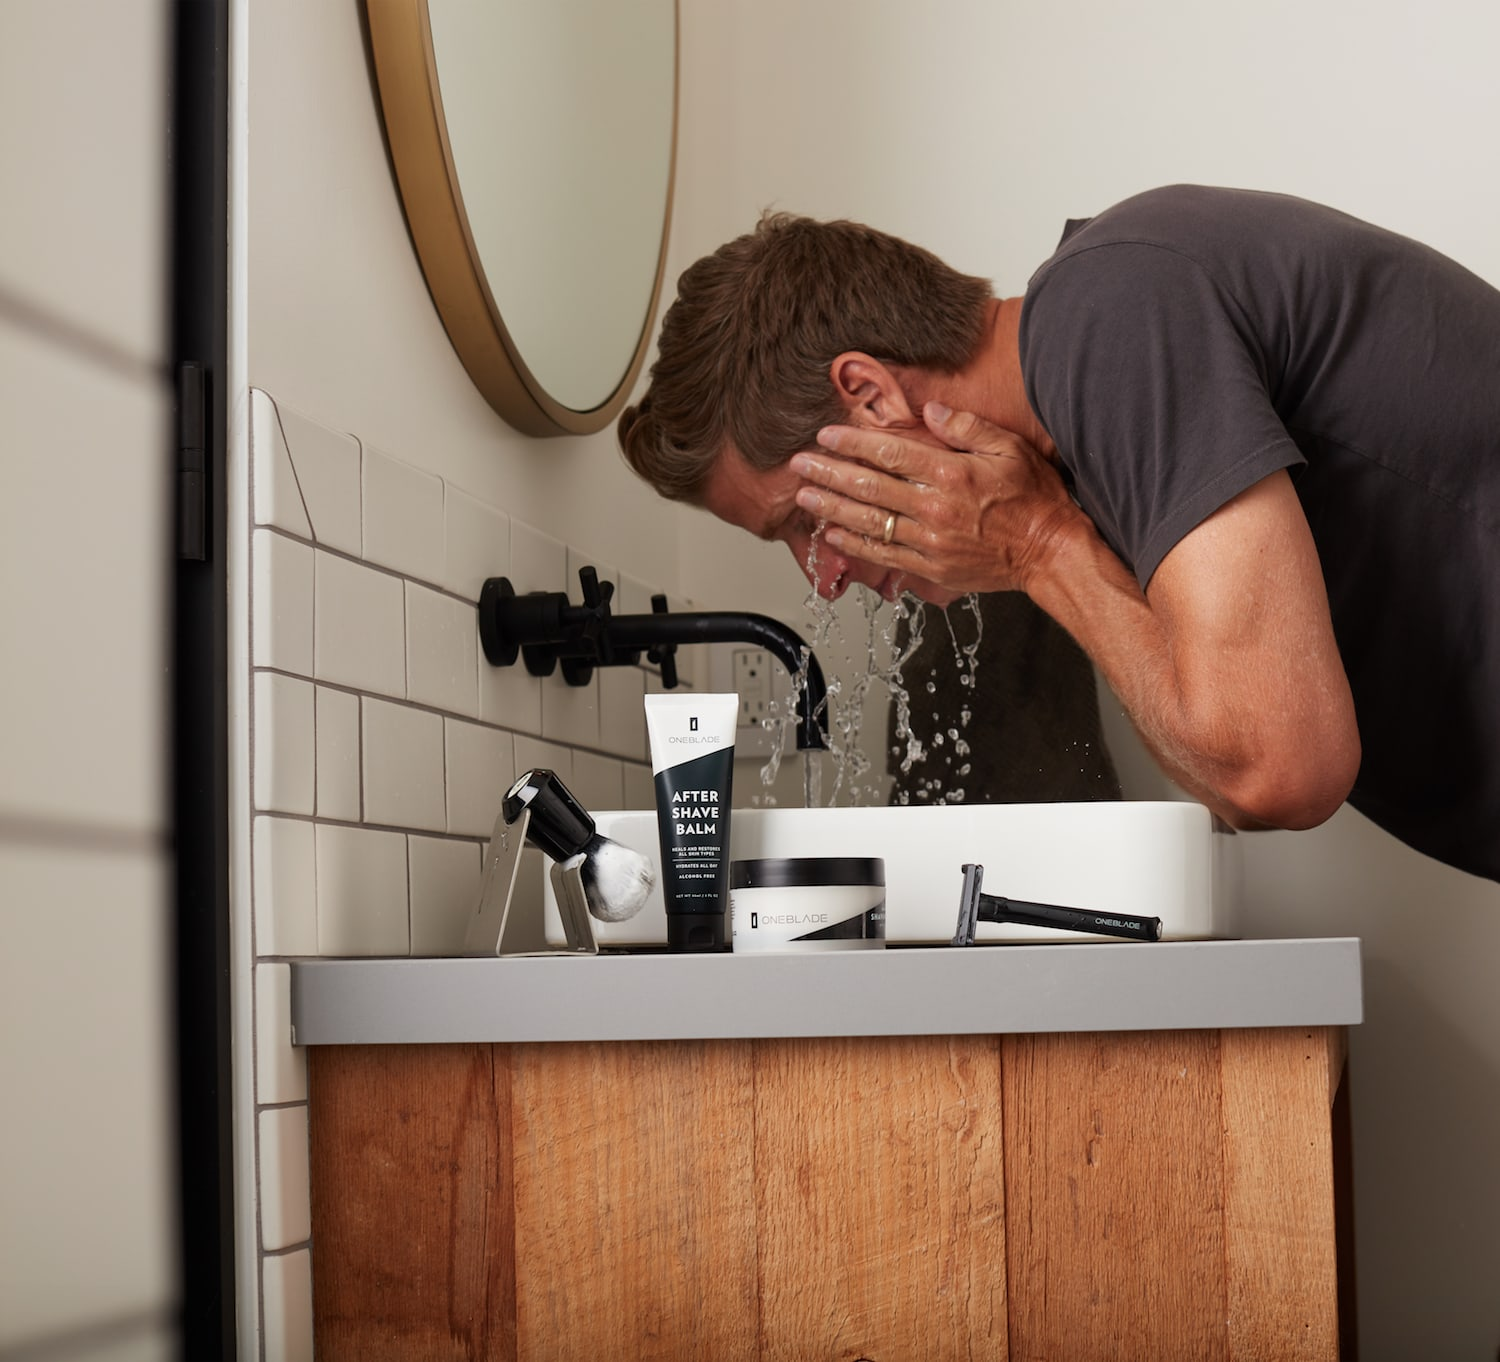 Man splashing water on his face at a sink with OneBlade products sitting